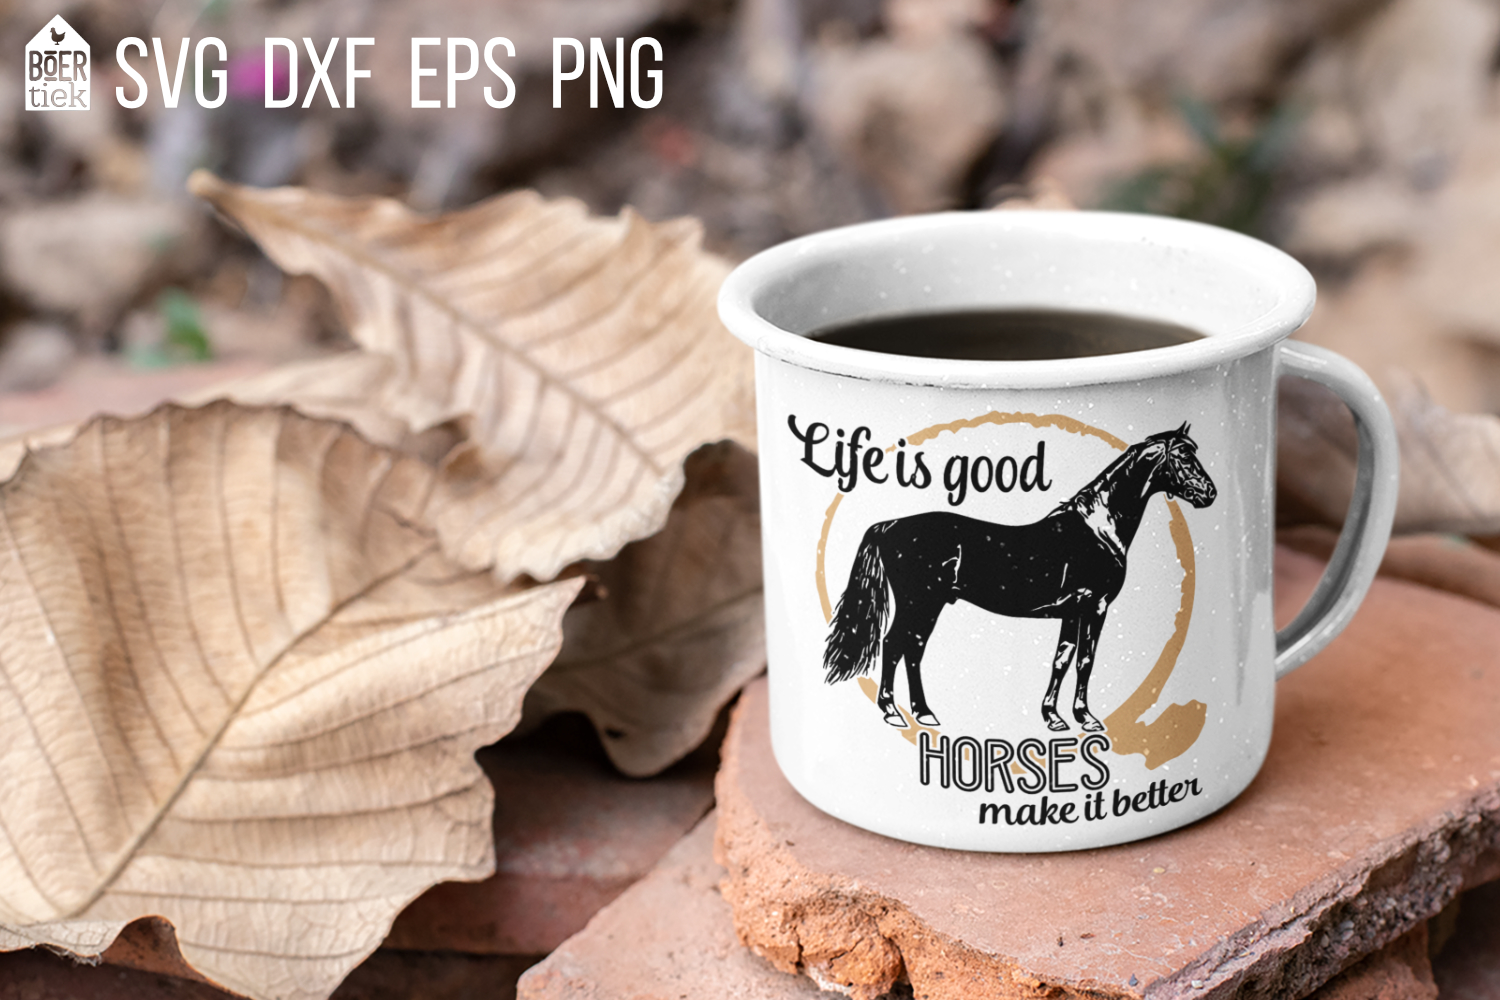 Horses make life better, SVG file for horse lovers example image 1